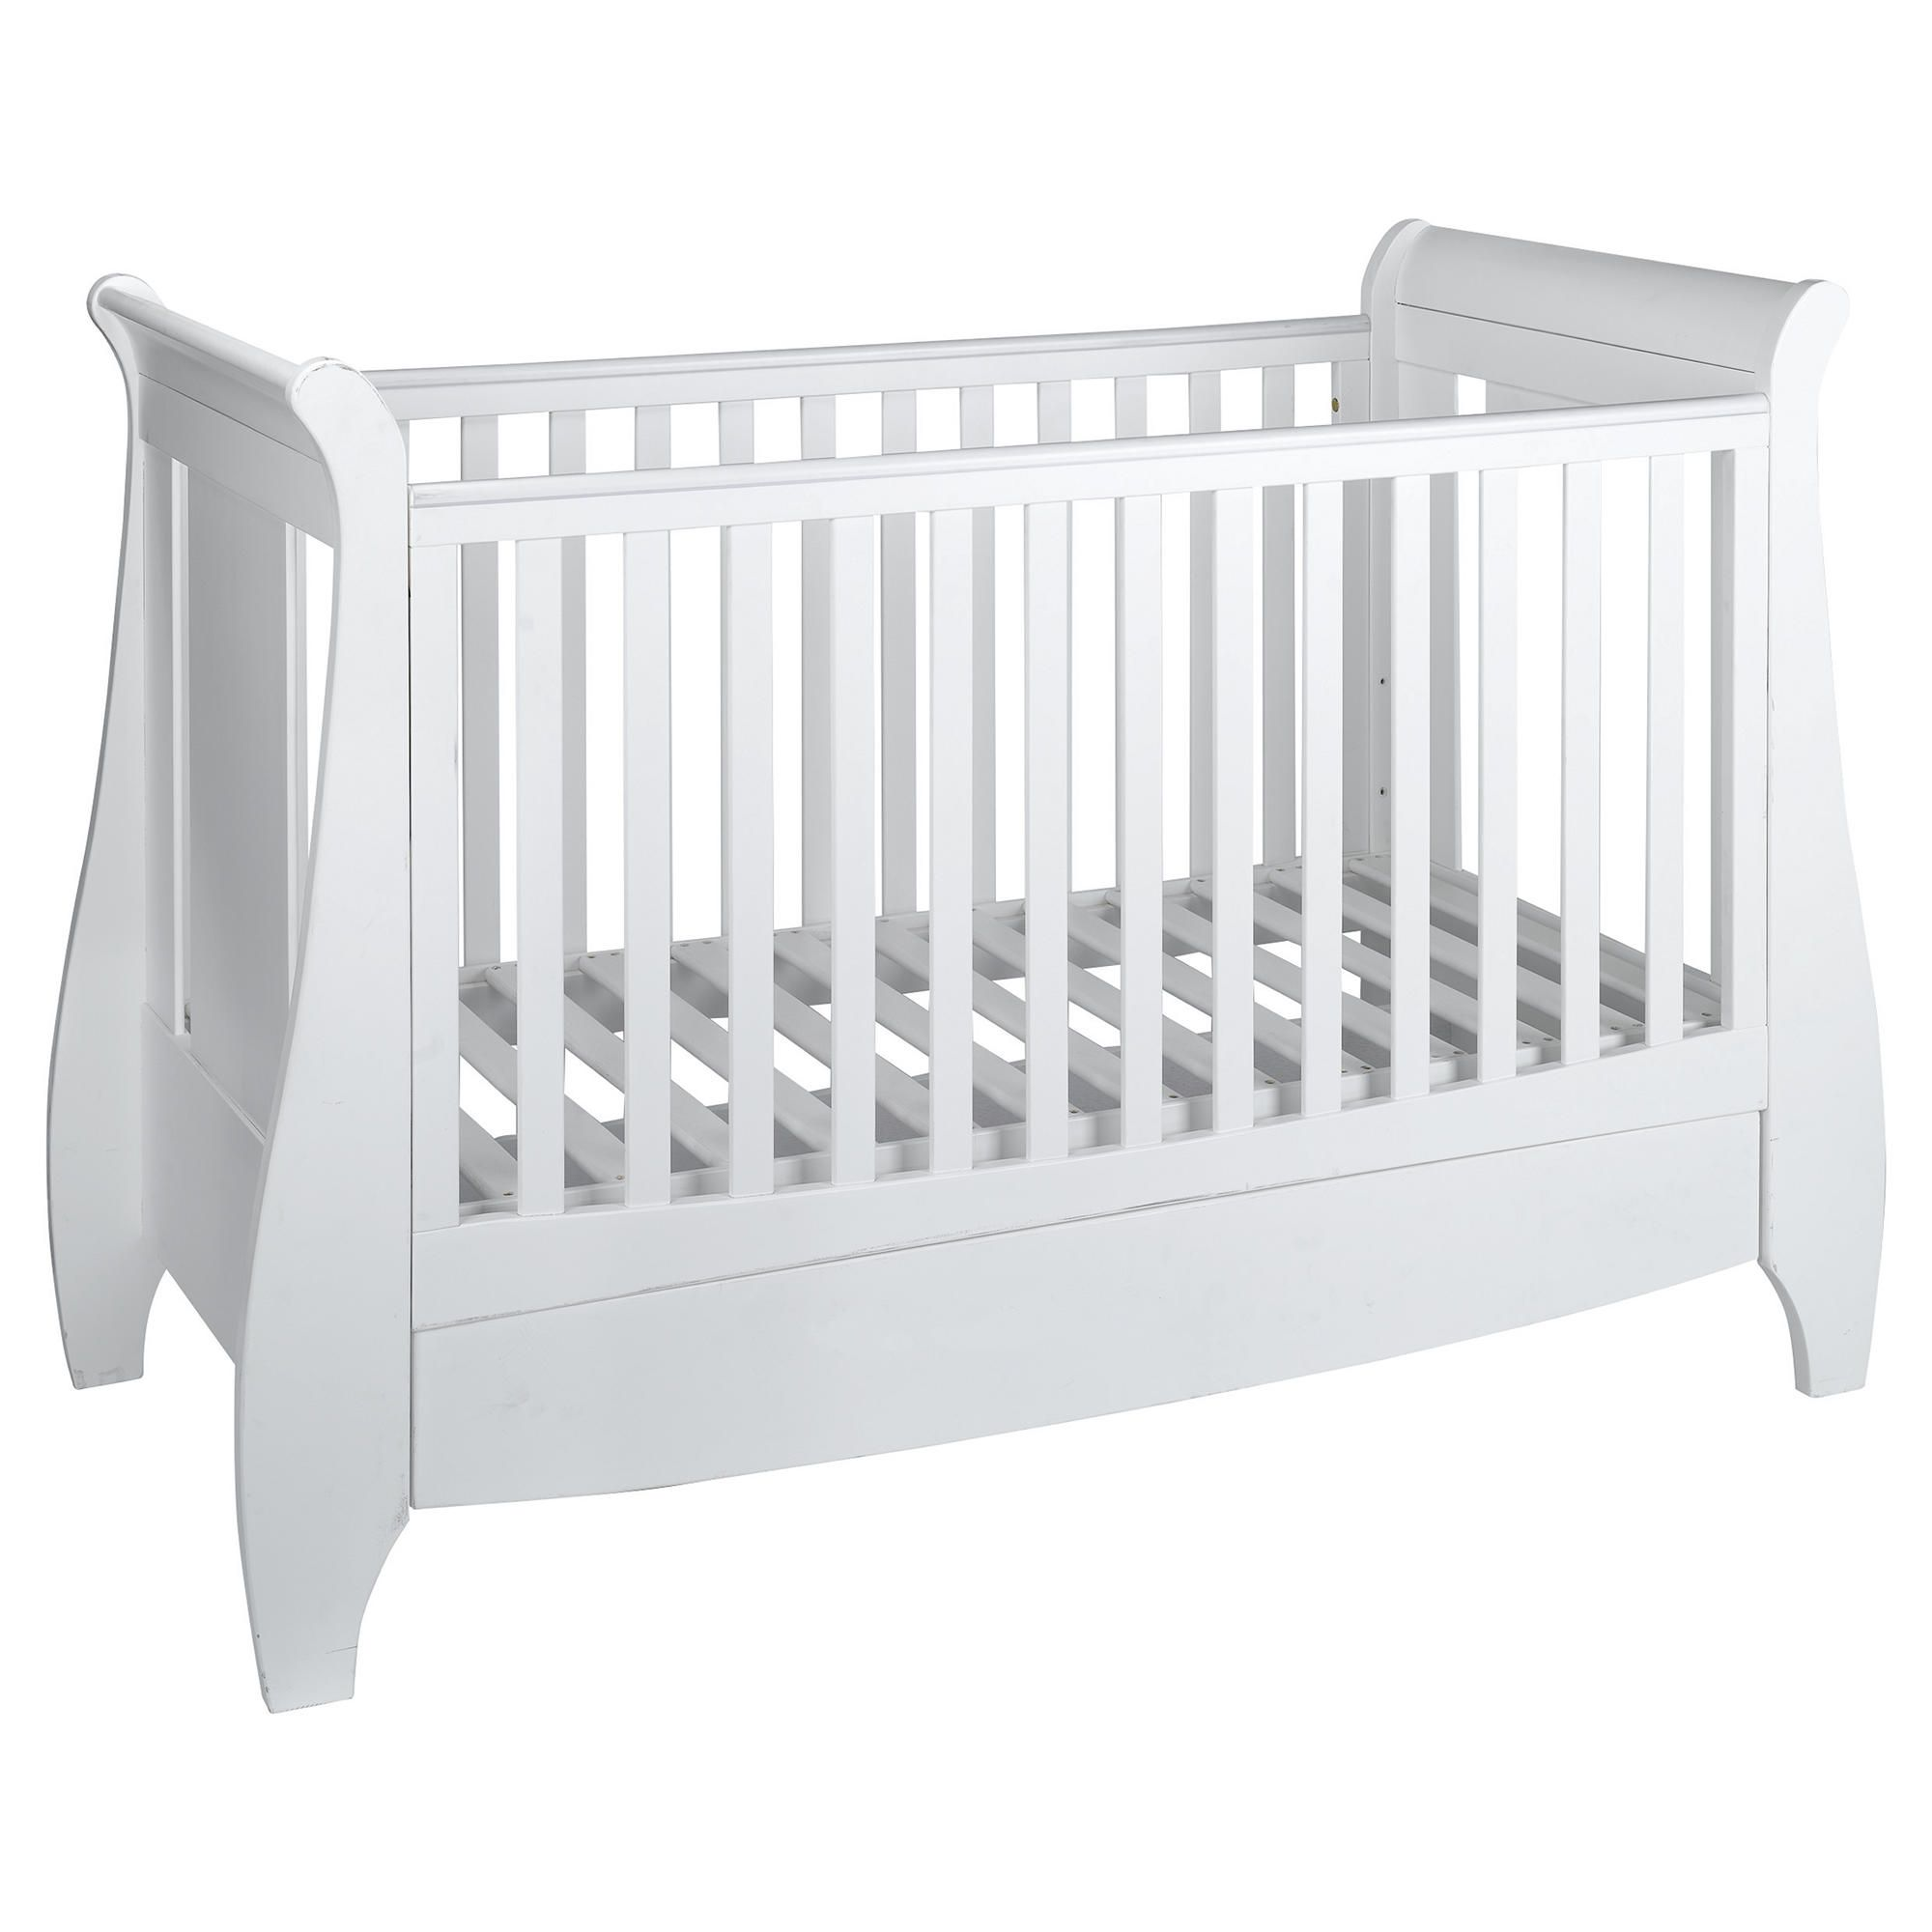 Tutti Bambini Lucas Dropside Sleigh Cot Bed, White at Tesco Direct